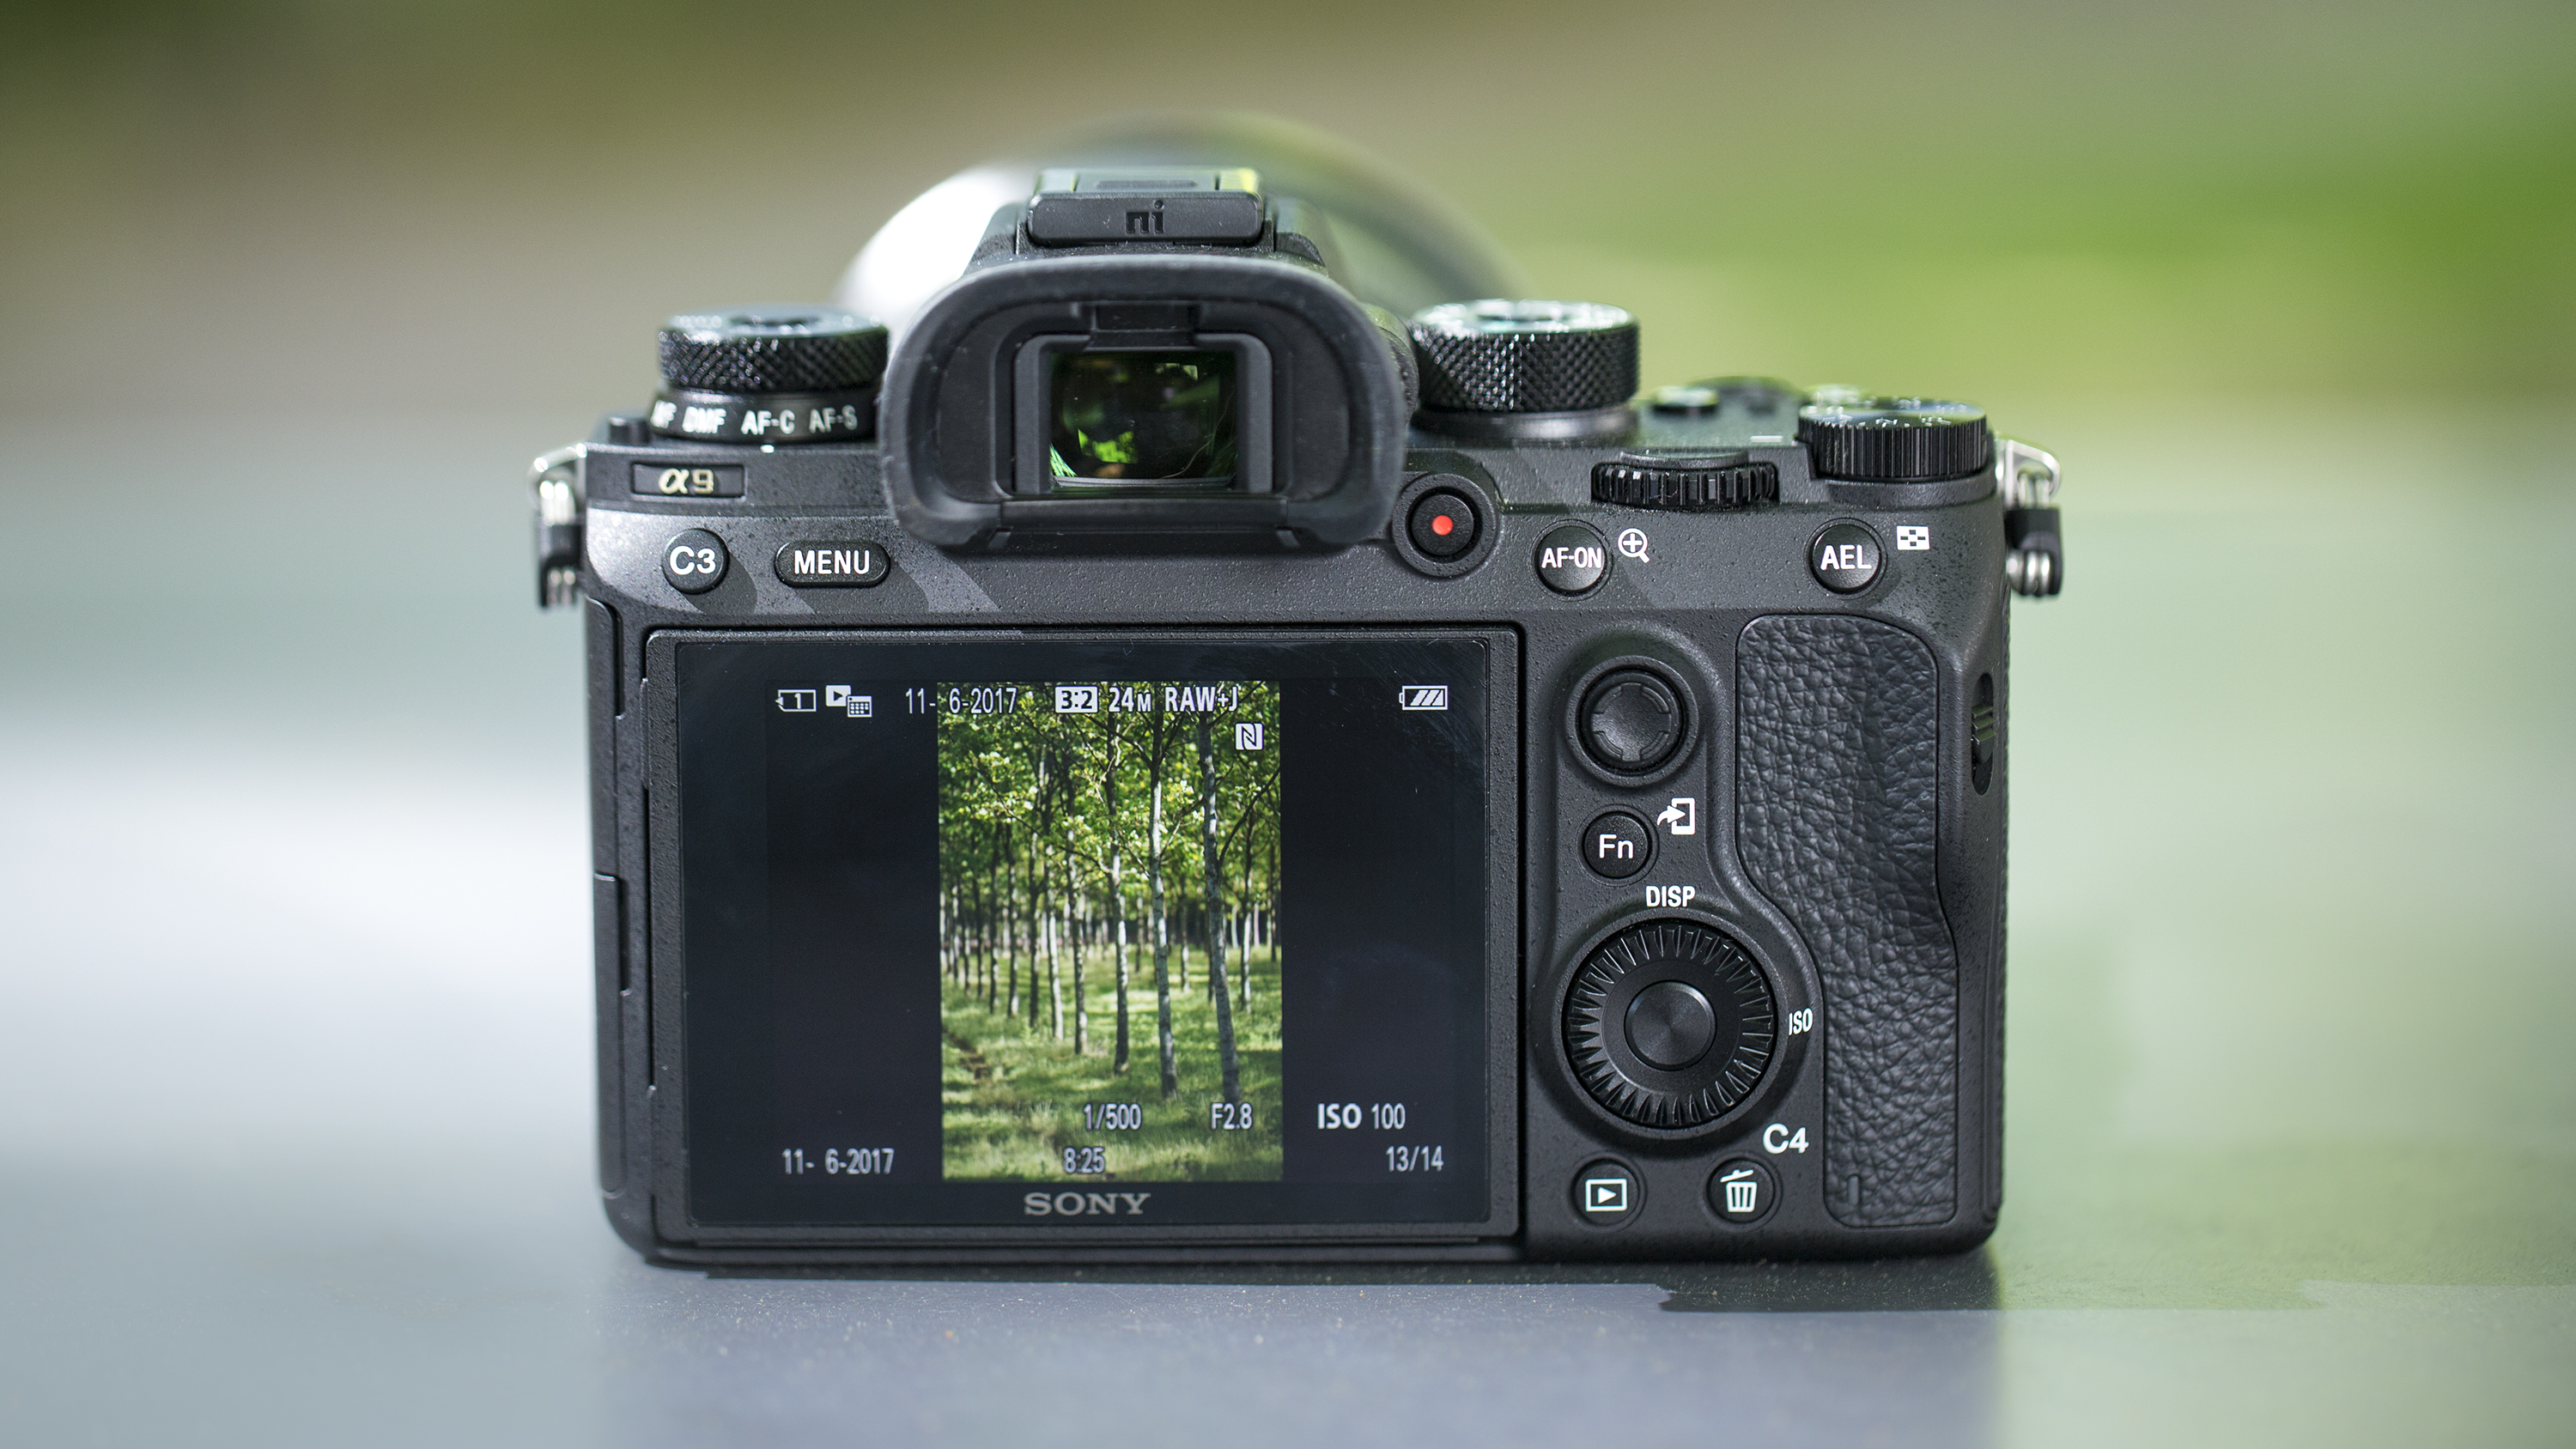 Sony Alpha A7000: everything we know so far